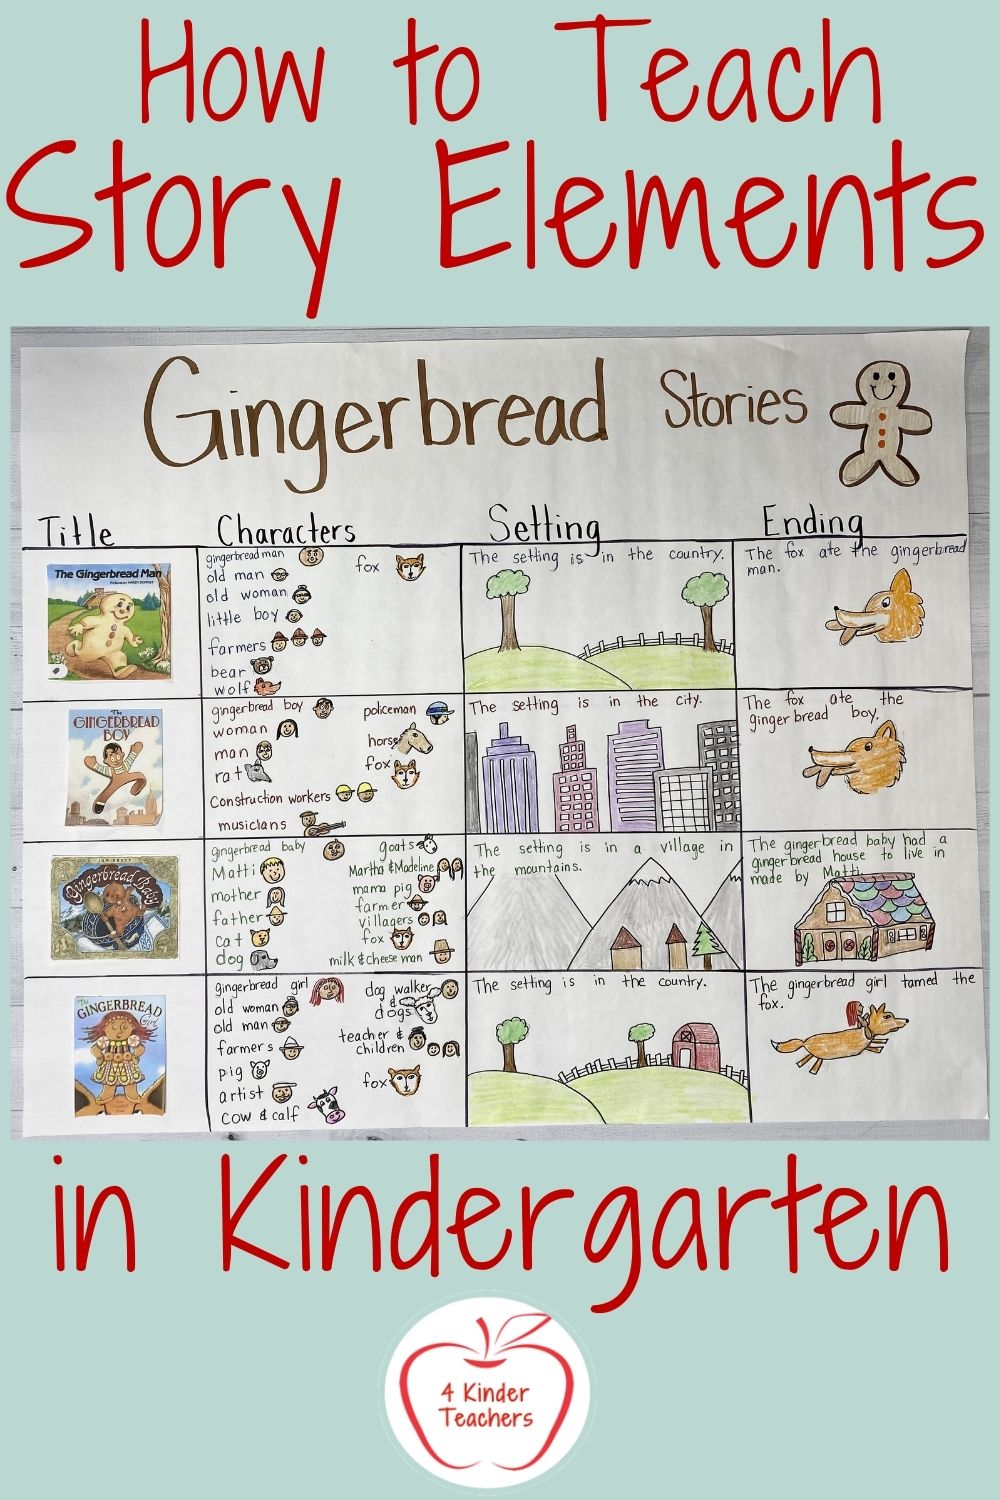 How to Teach Story Elements in Kindergarten